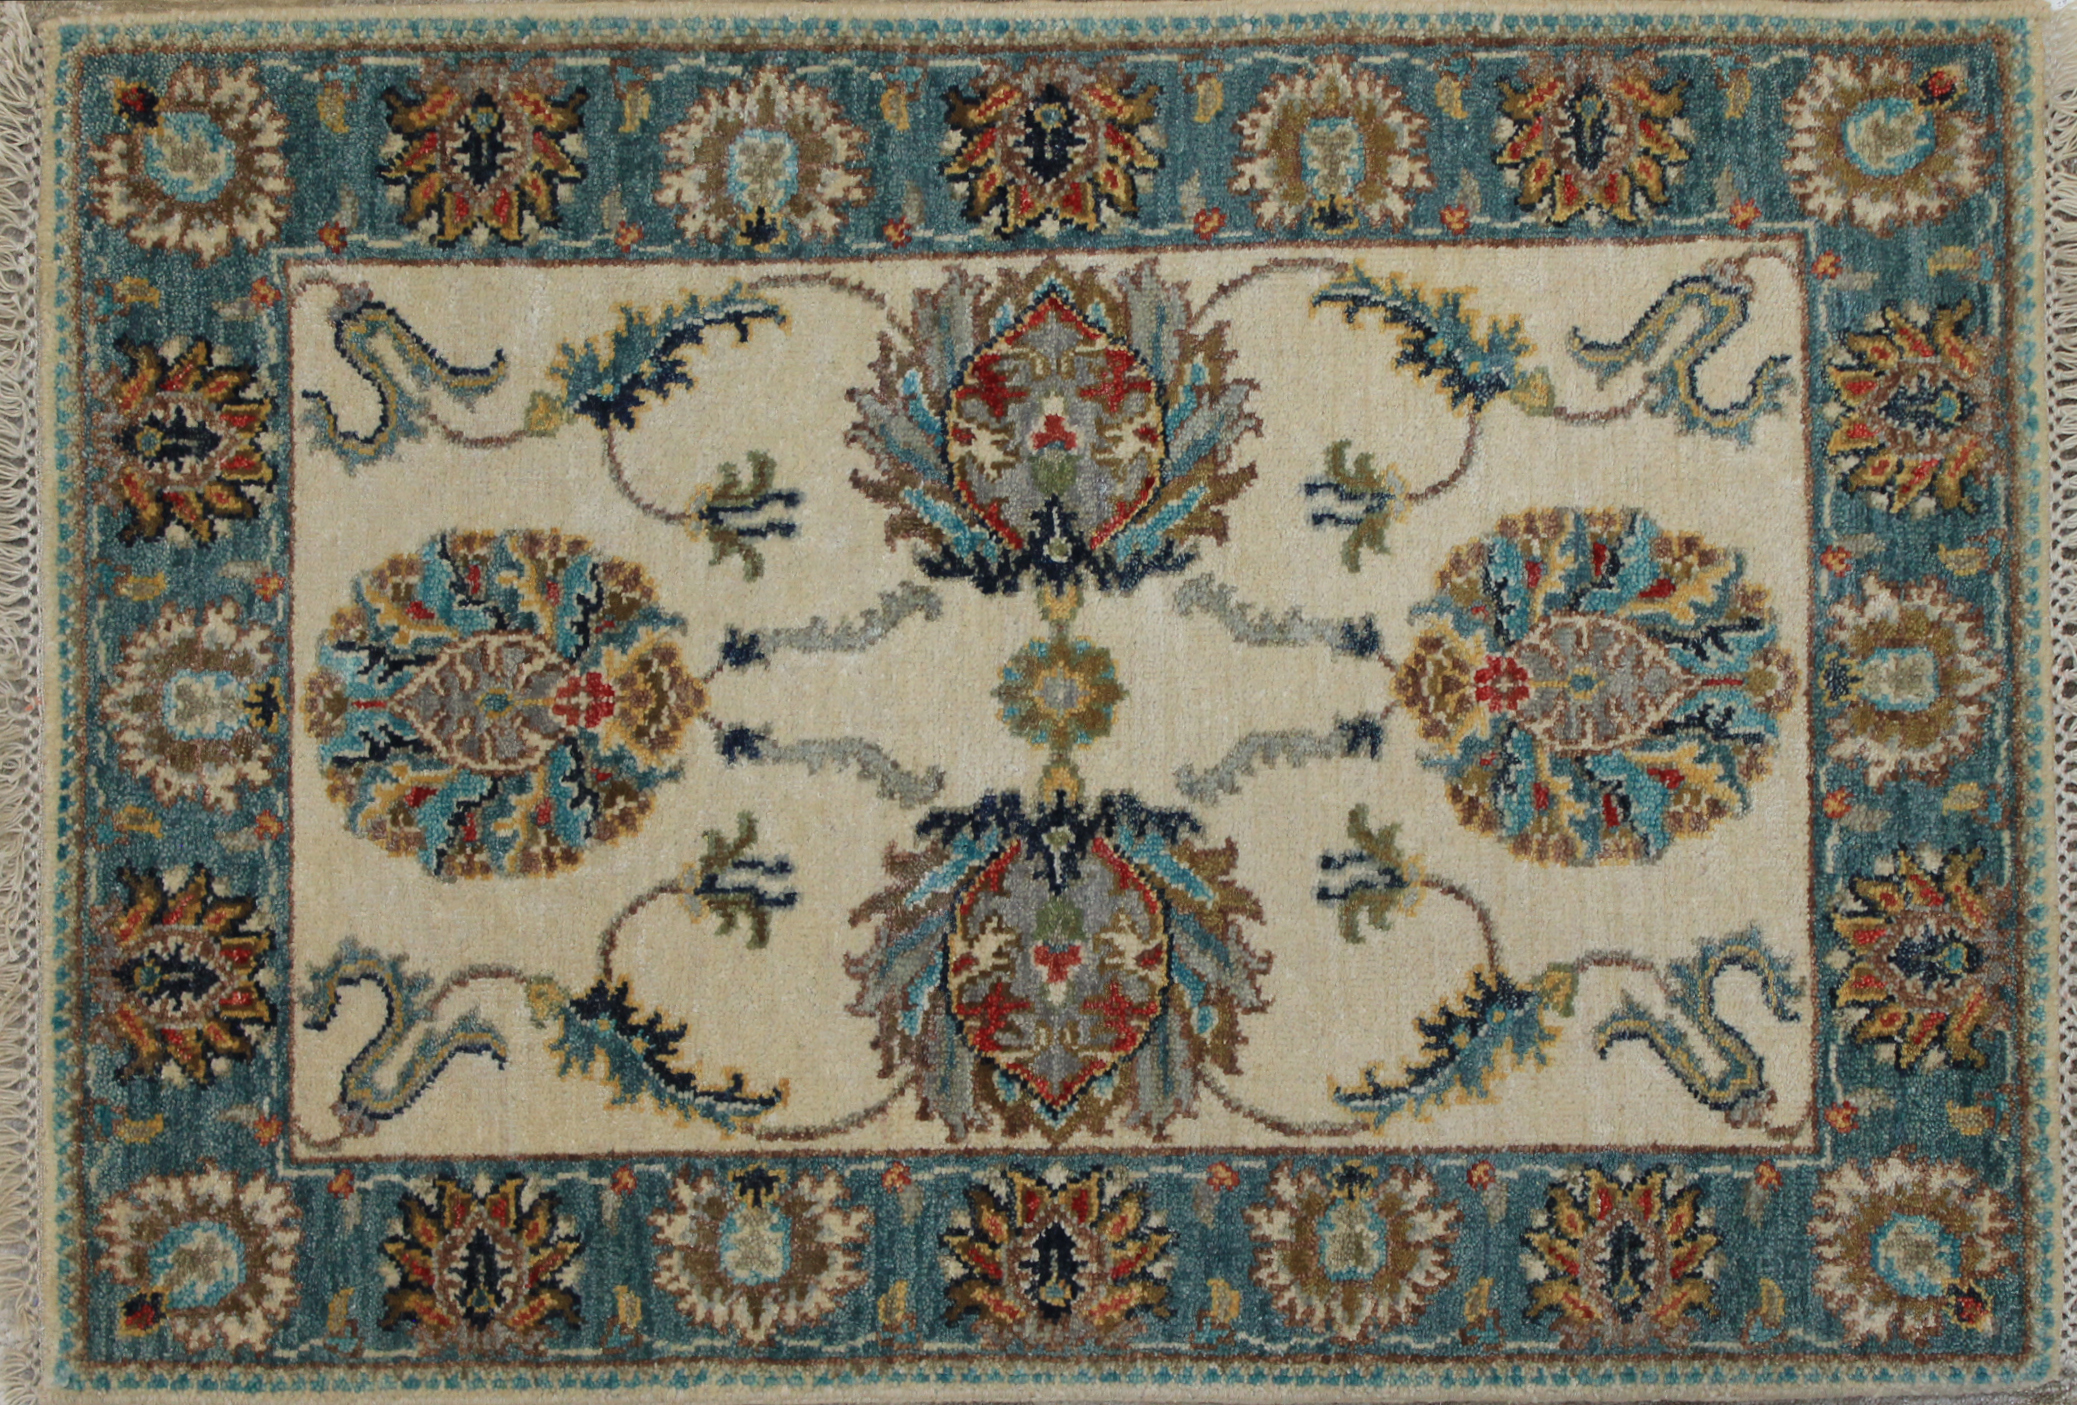 2X3 Traditional Hand Knotted Wool Area Rug - MR024201